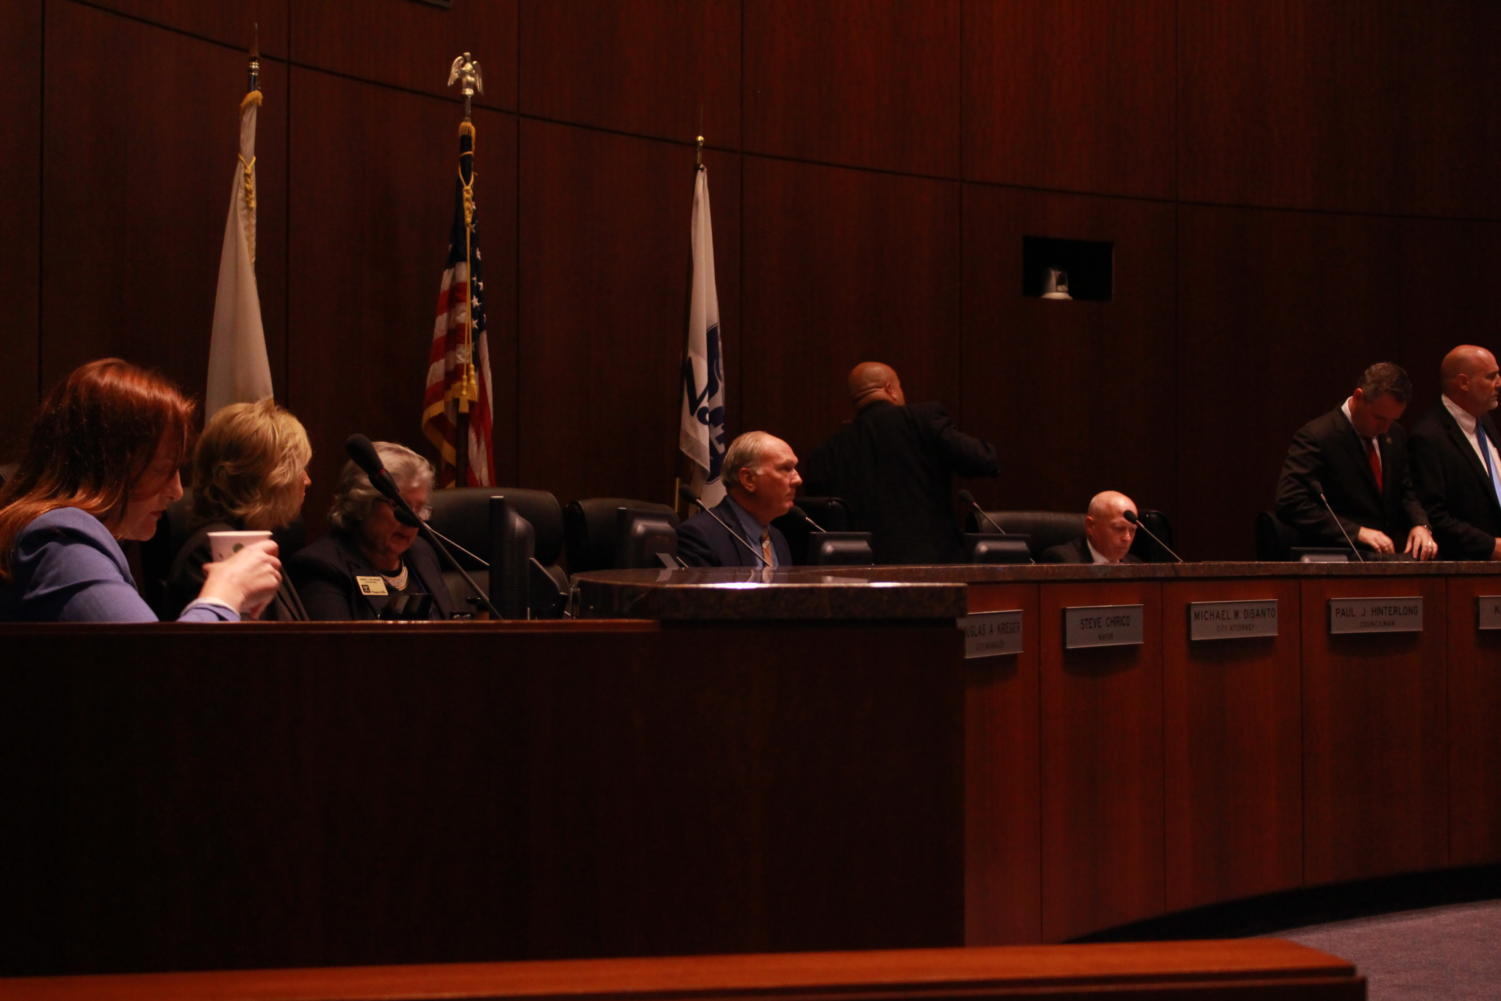 In a 6-3 vote, the Councilors also discussed a possible referendum on the issue.